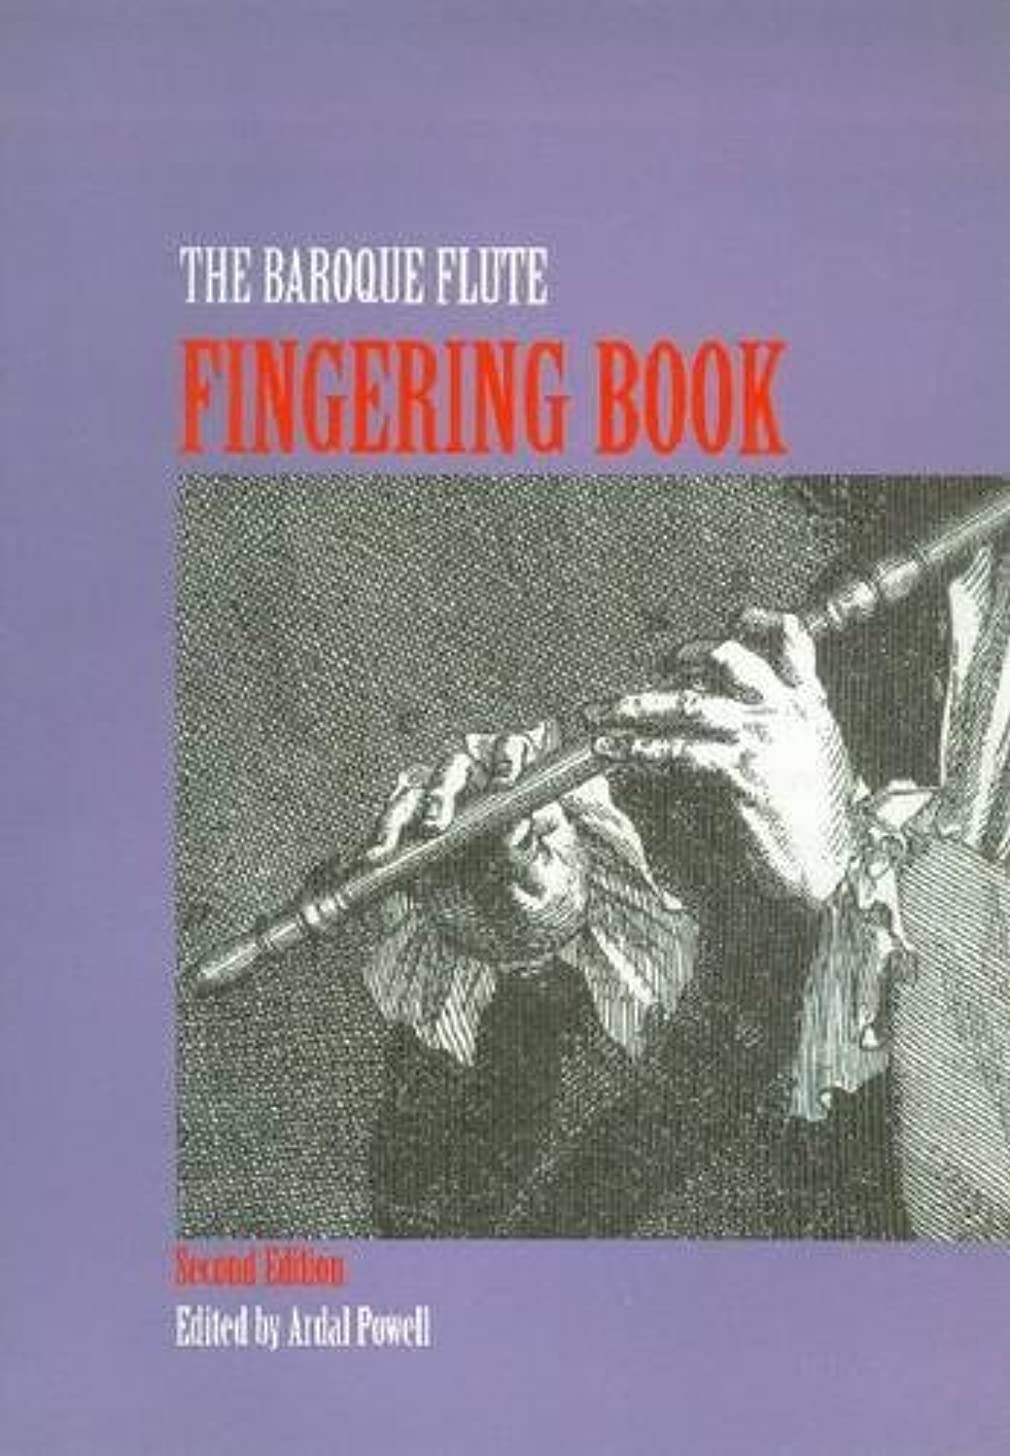 Baroque Flute Fingering Book, Second Edition: A Comprehensive Guide to Fingerings for the One-Keyed Flute Including Trills, Flattements, and Battements (Organologia)